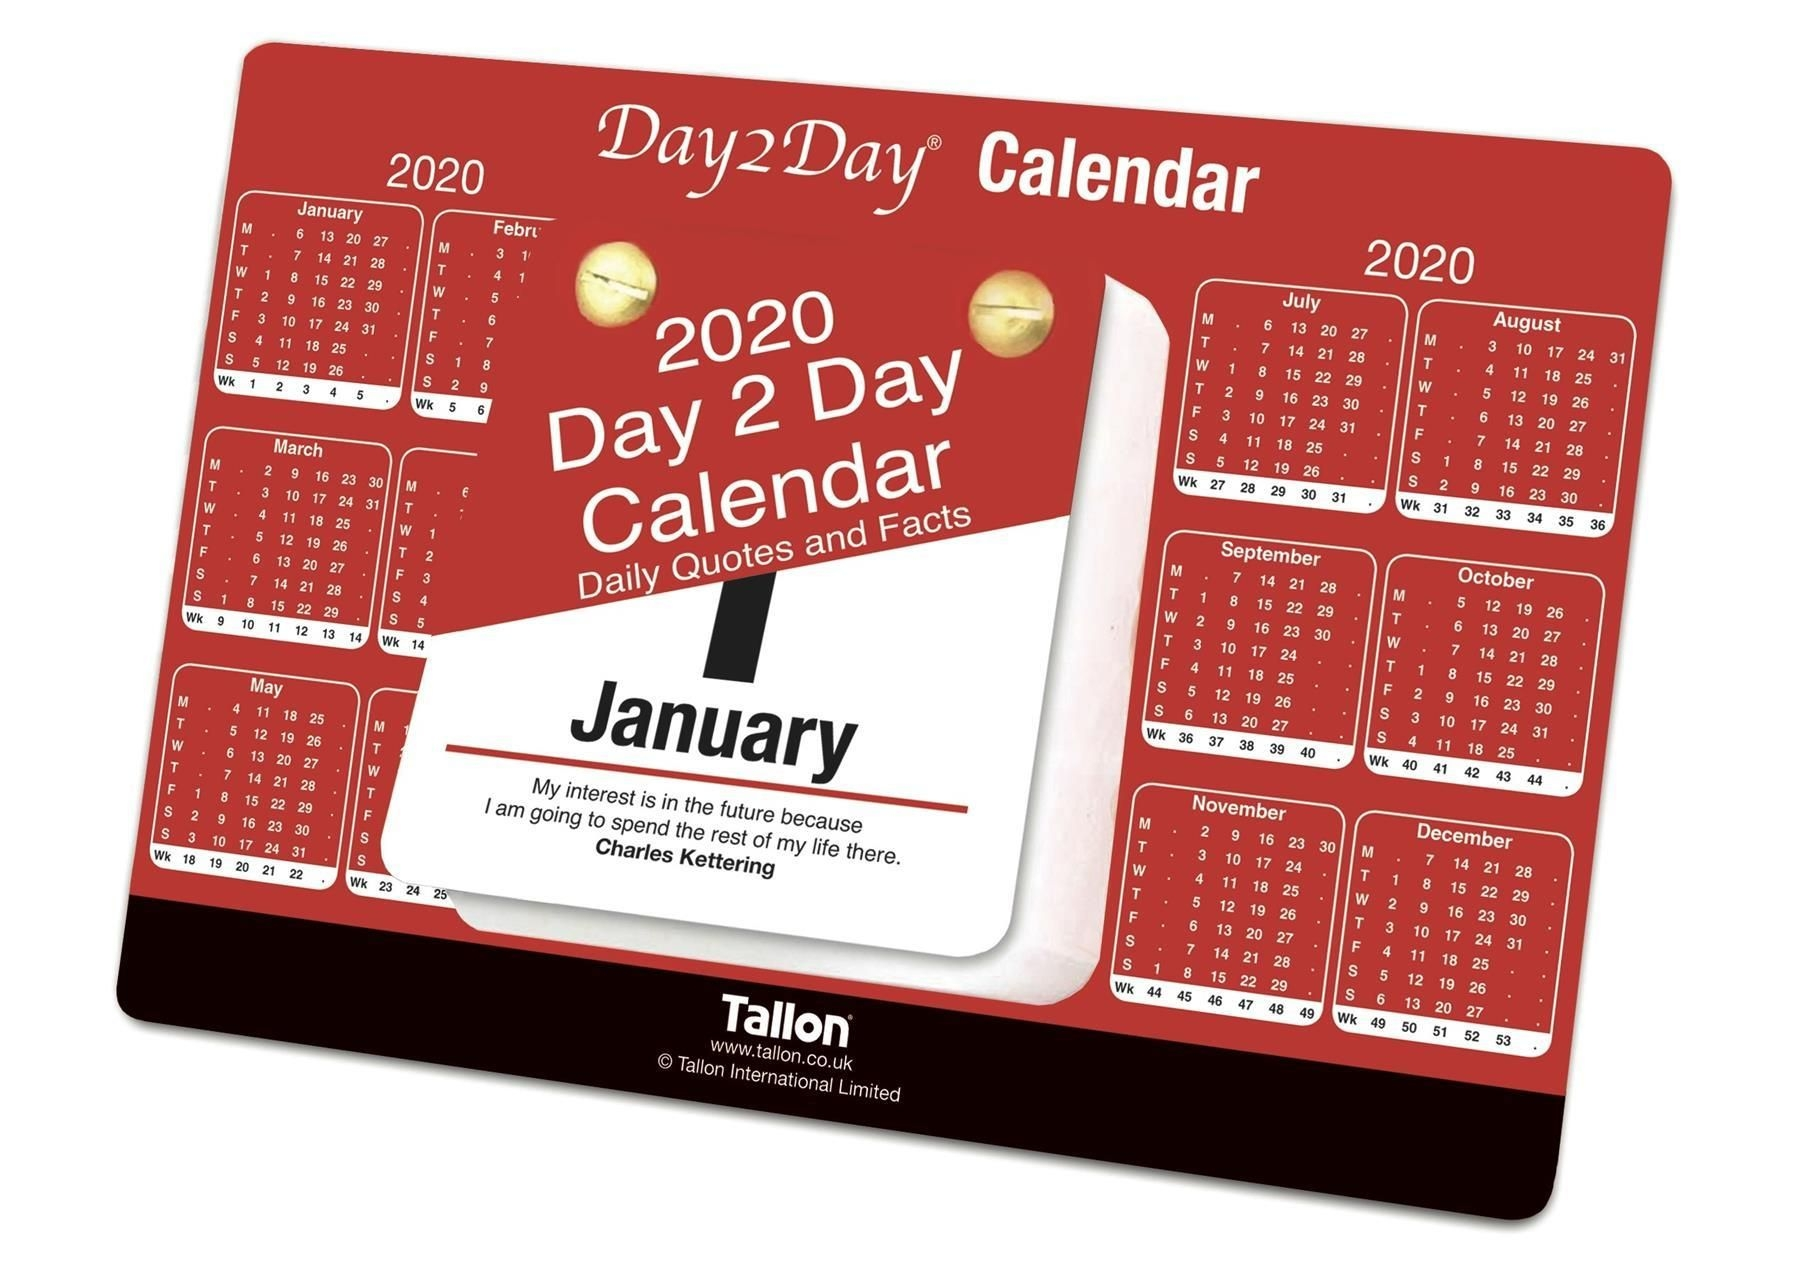 Details About 2020 Day To Day Desk Top Stand Up Tear Off Block Calendar -  Daily Quotes & Facts